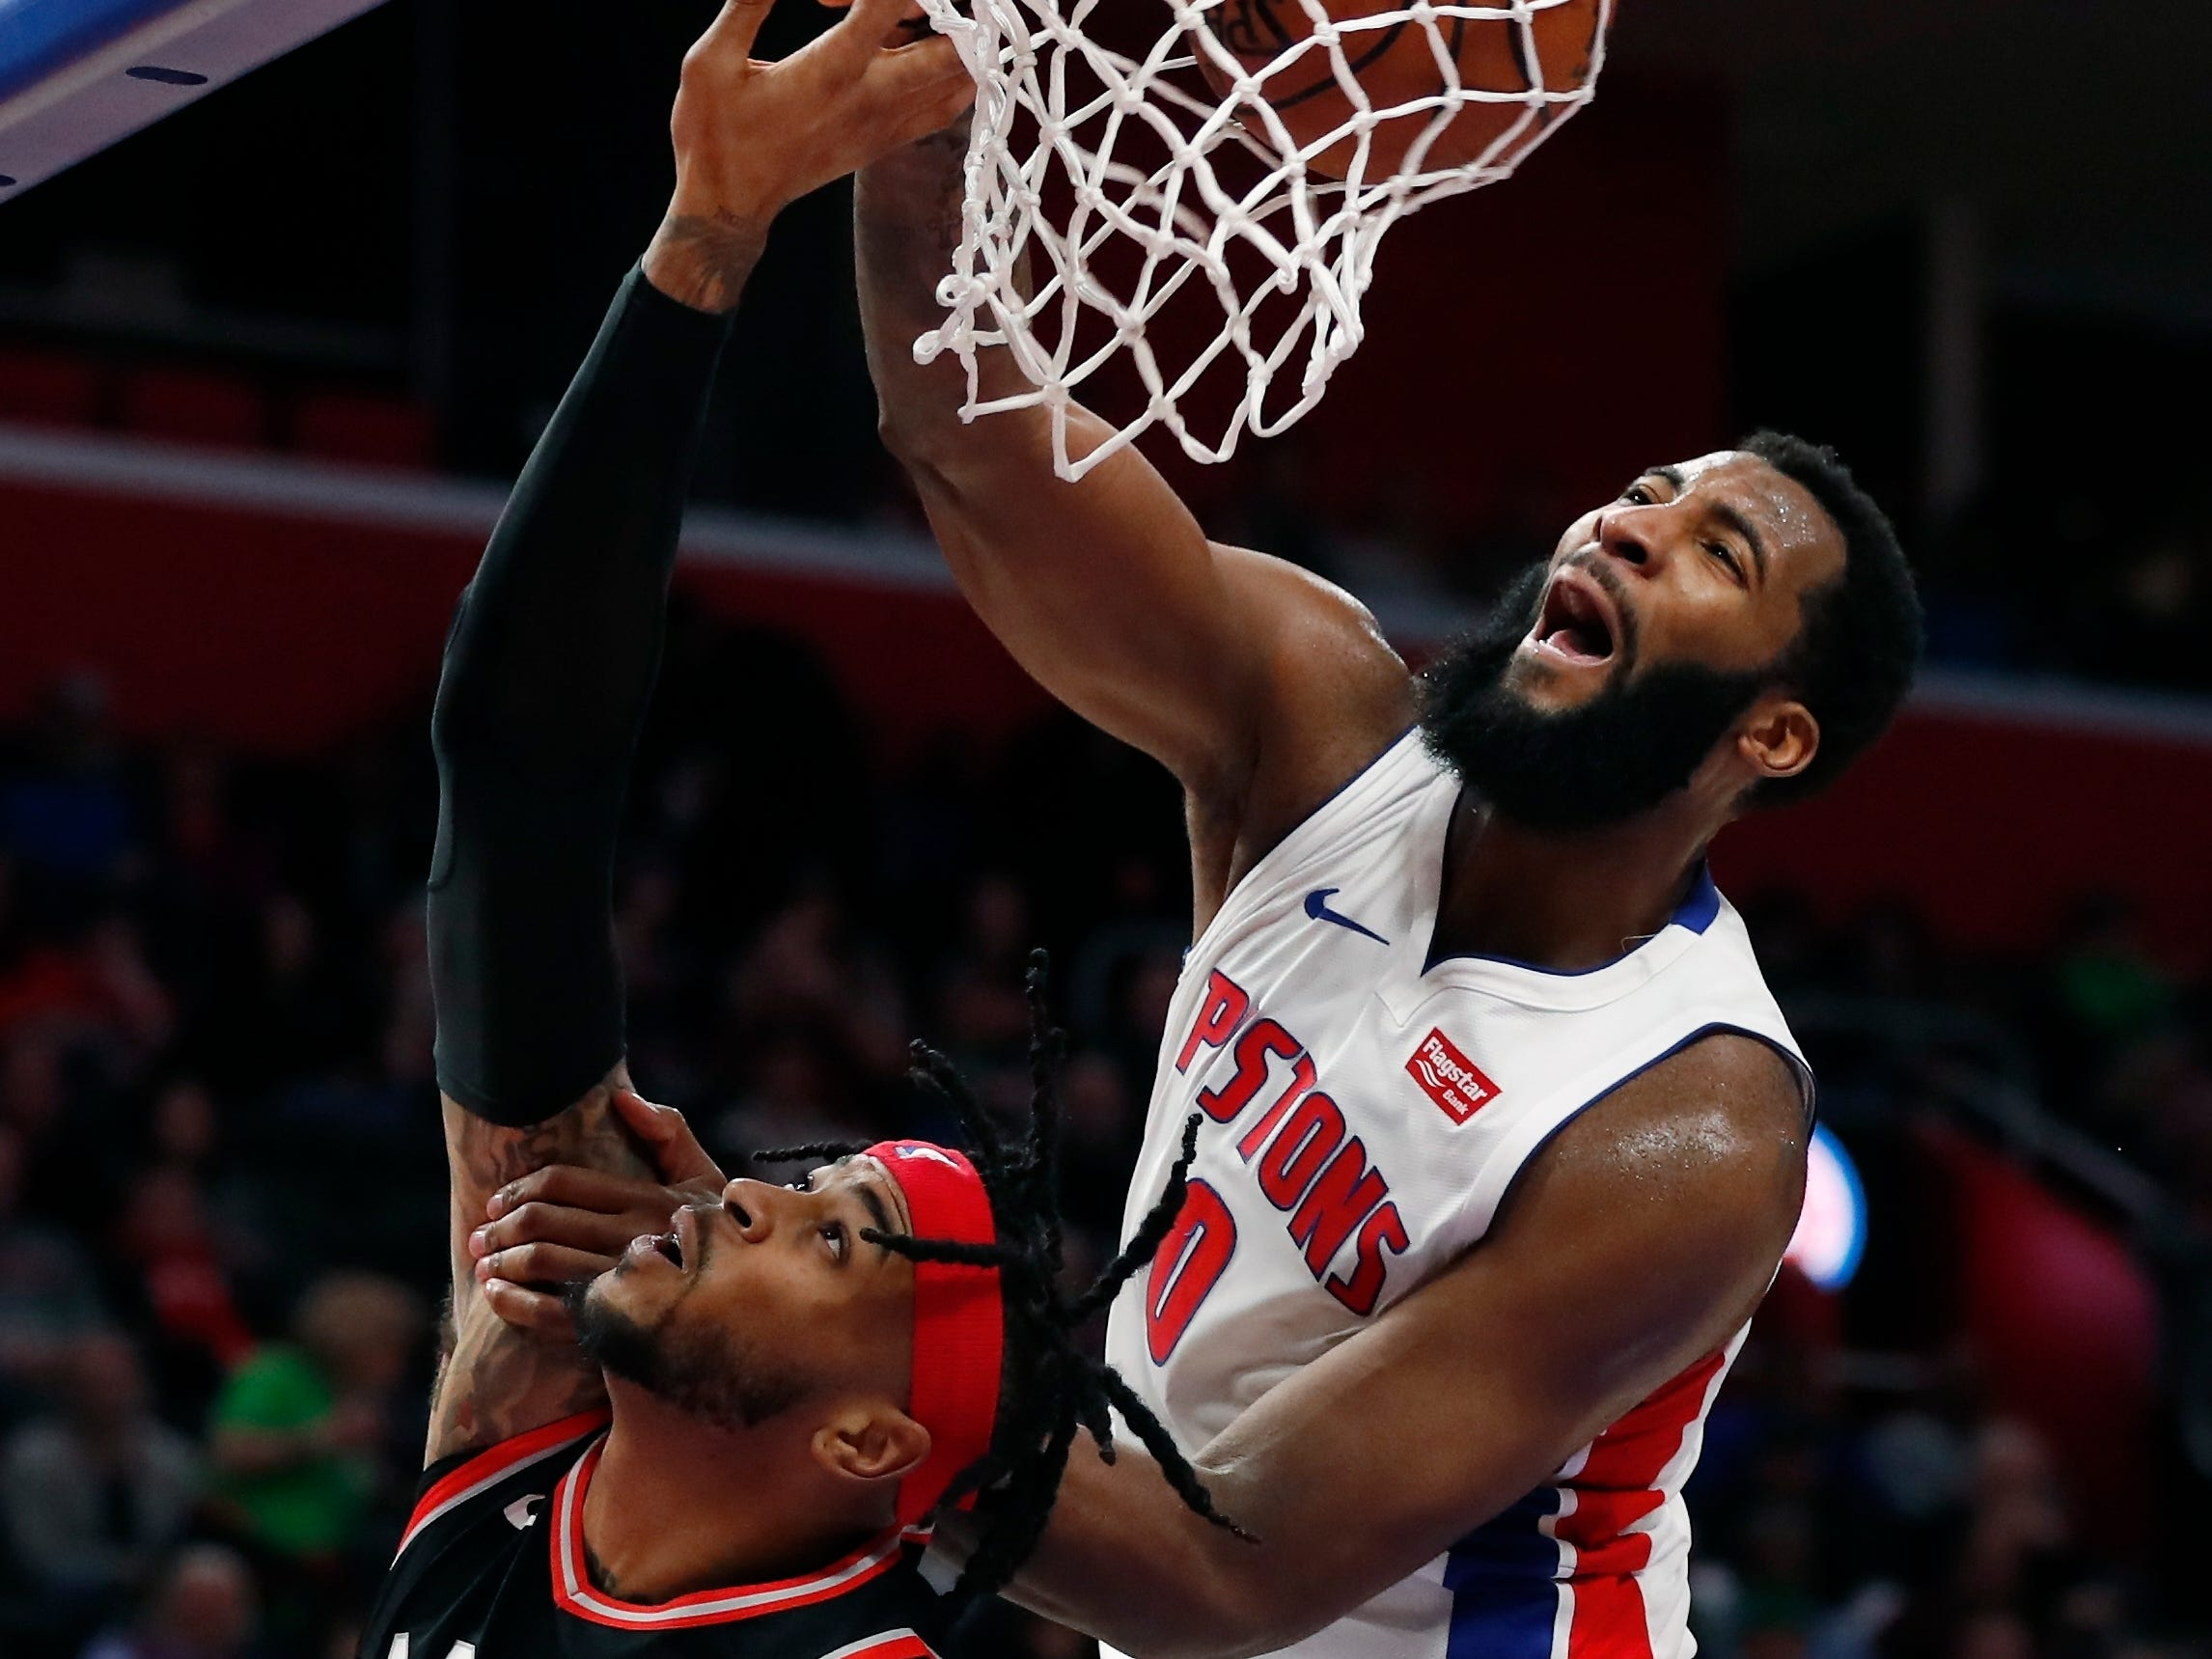 Andre Drummond dunks on Toronto Raptors' Eric Moreland during the second half of the Detroit Pistons' 110-107 win Sunday, March 17, 2019, in Detroit.